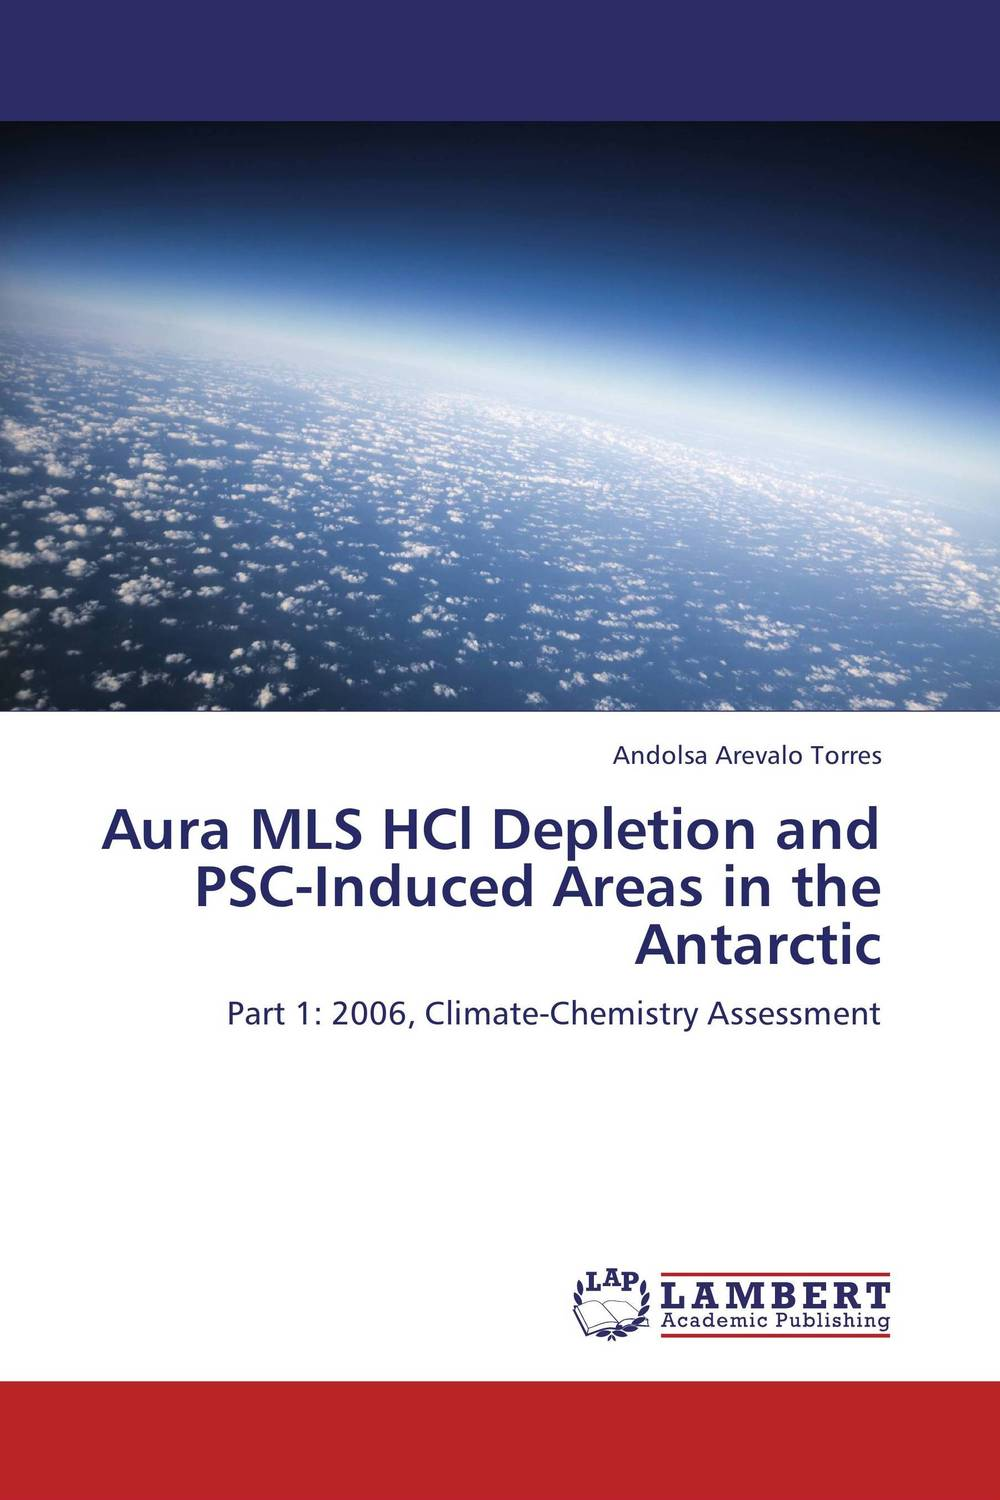 Aura MLS HCl Depletion and PSC-Induced Areas in the Antarctic kenneth rosen d investing in income properties the big six formula for achieving wealth in real estate